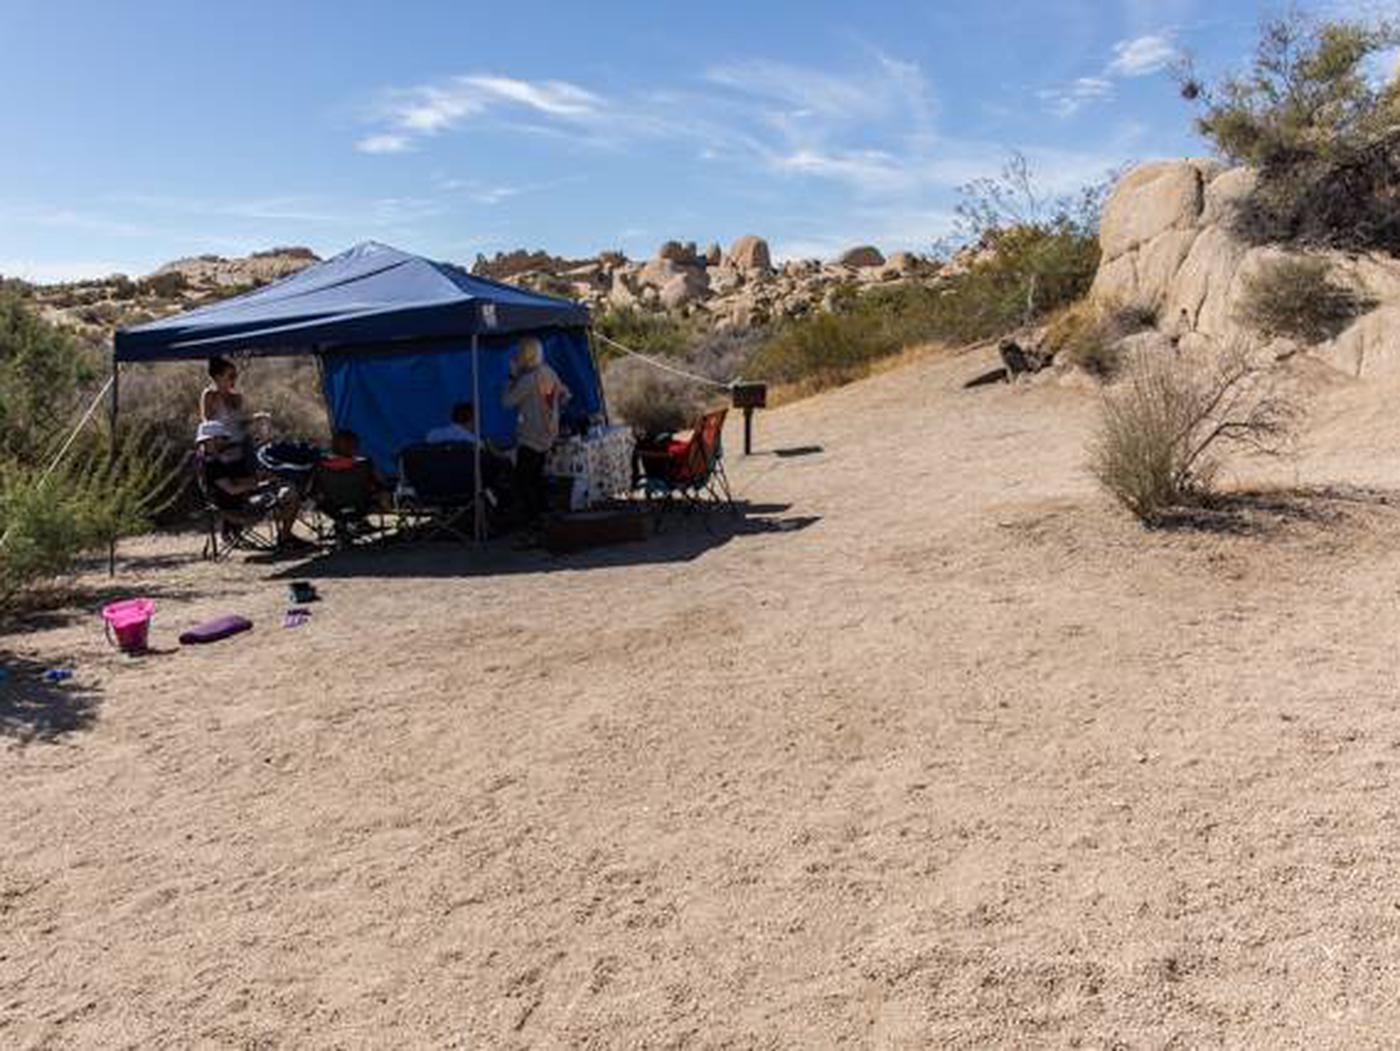 Jumbo Rocks site 97Another view of campsite